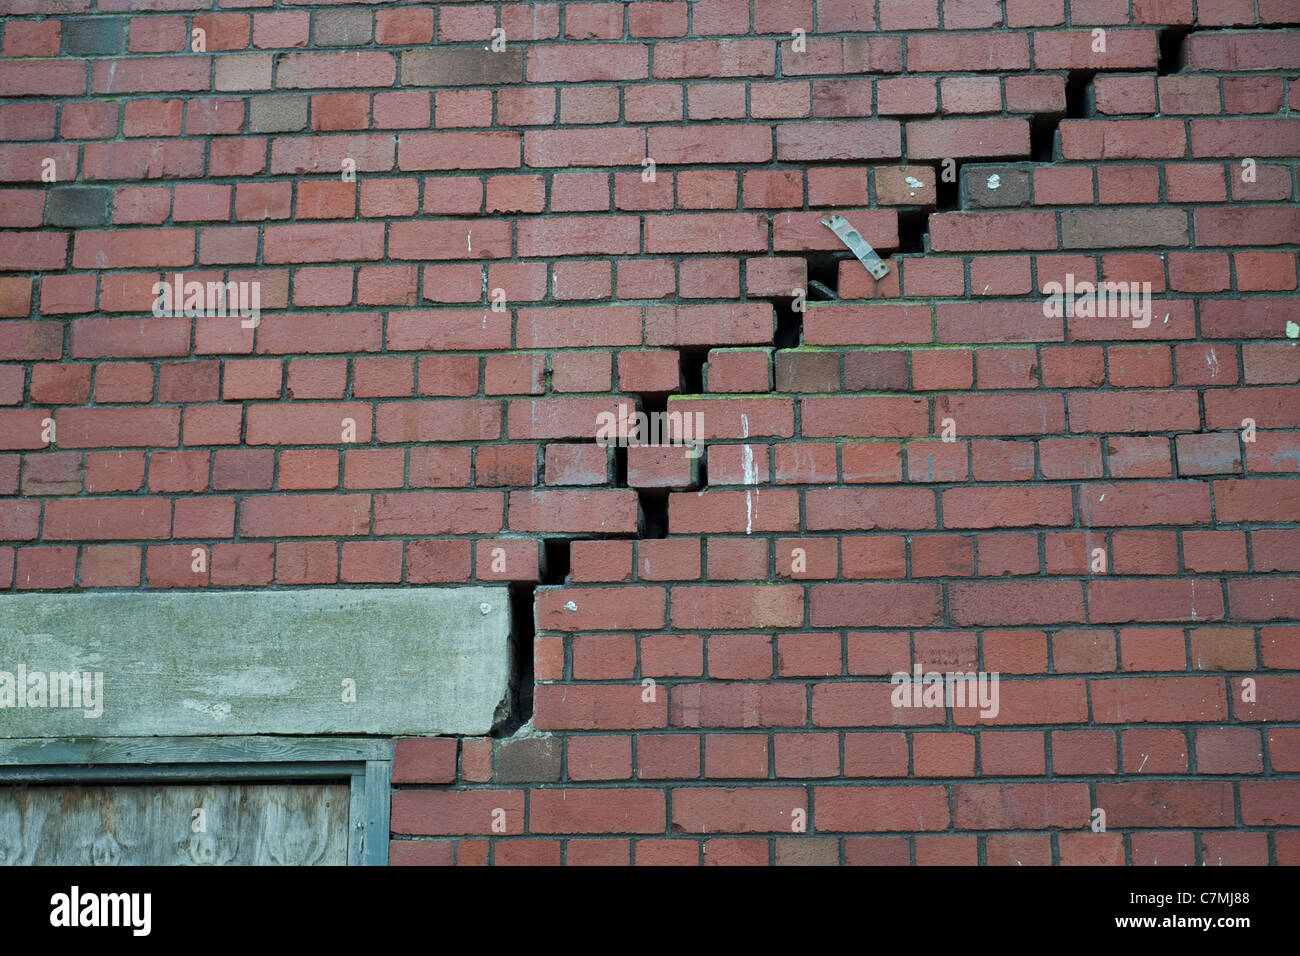 Acute structural movement in a brick wall - Stock Image